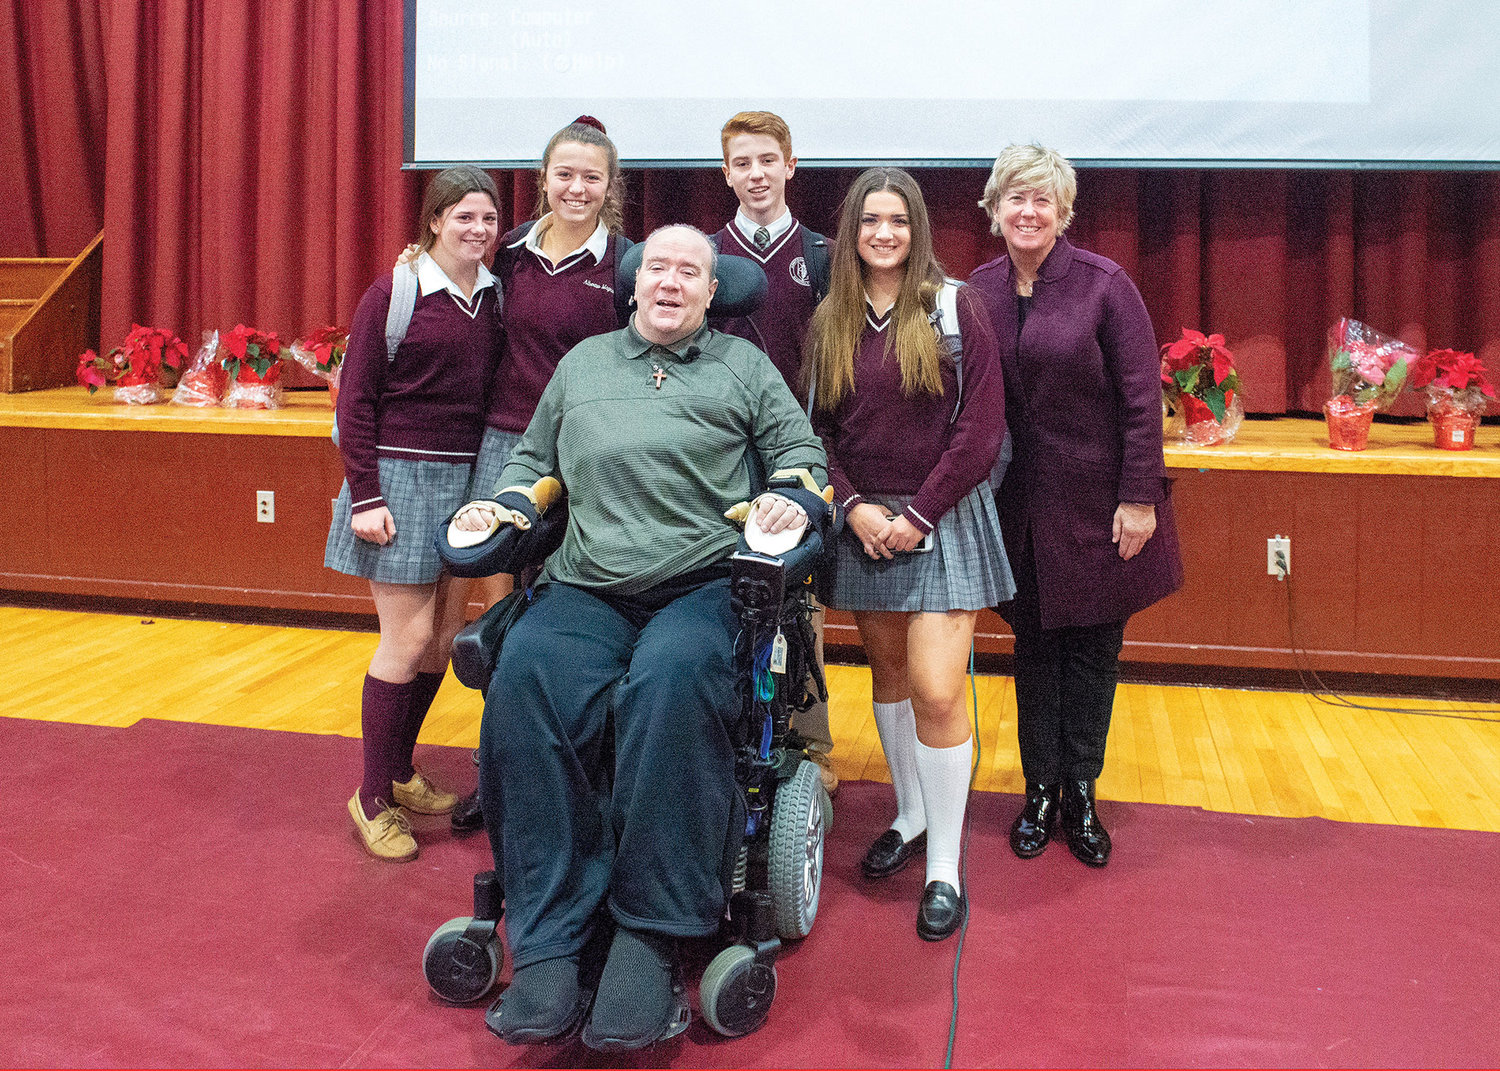 Billy Keenan and Patti Ann McDonald, widow of the late NYPD Det. Steven McDonald, greet students Flynn Kirk, Morgan Adams, Kieran Keenan, who is Billy's son, and Alexa Gabrielle in Tom Collins Gymnasium at Albertus Magnus High School in Bardonia Dec. 11.